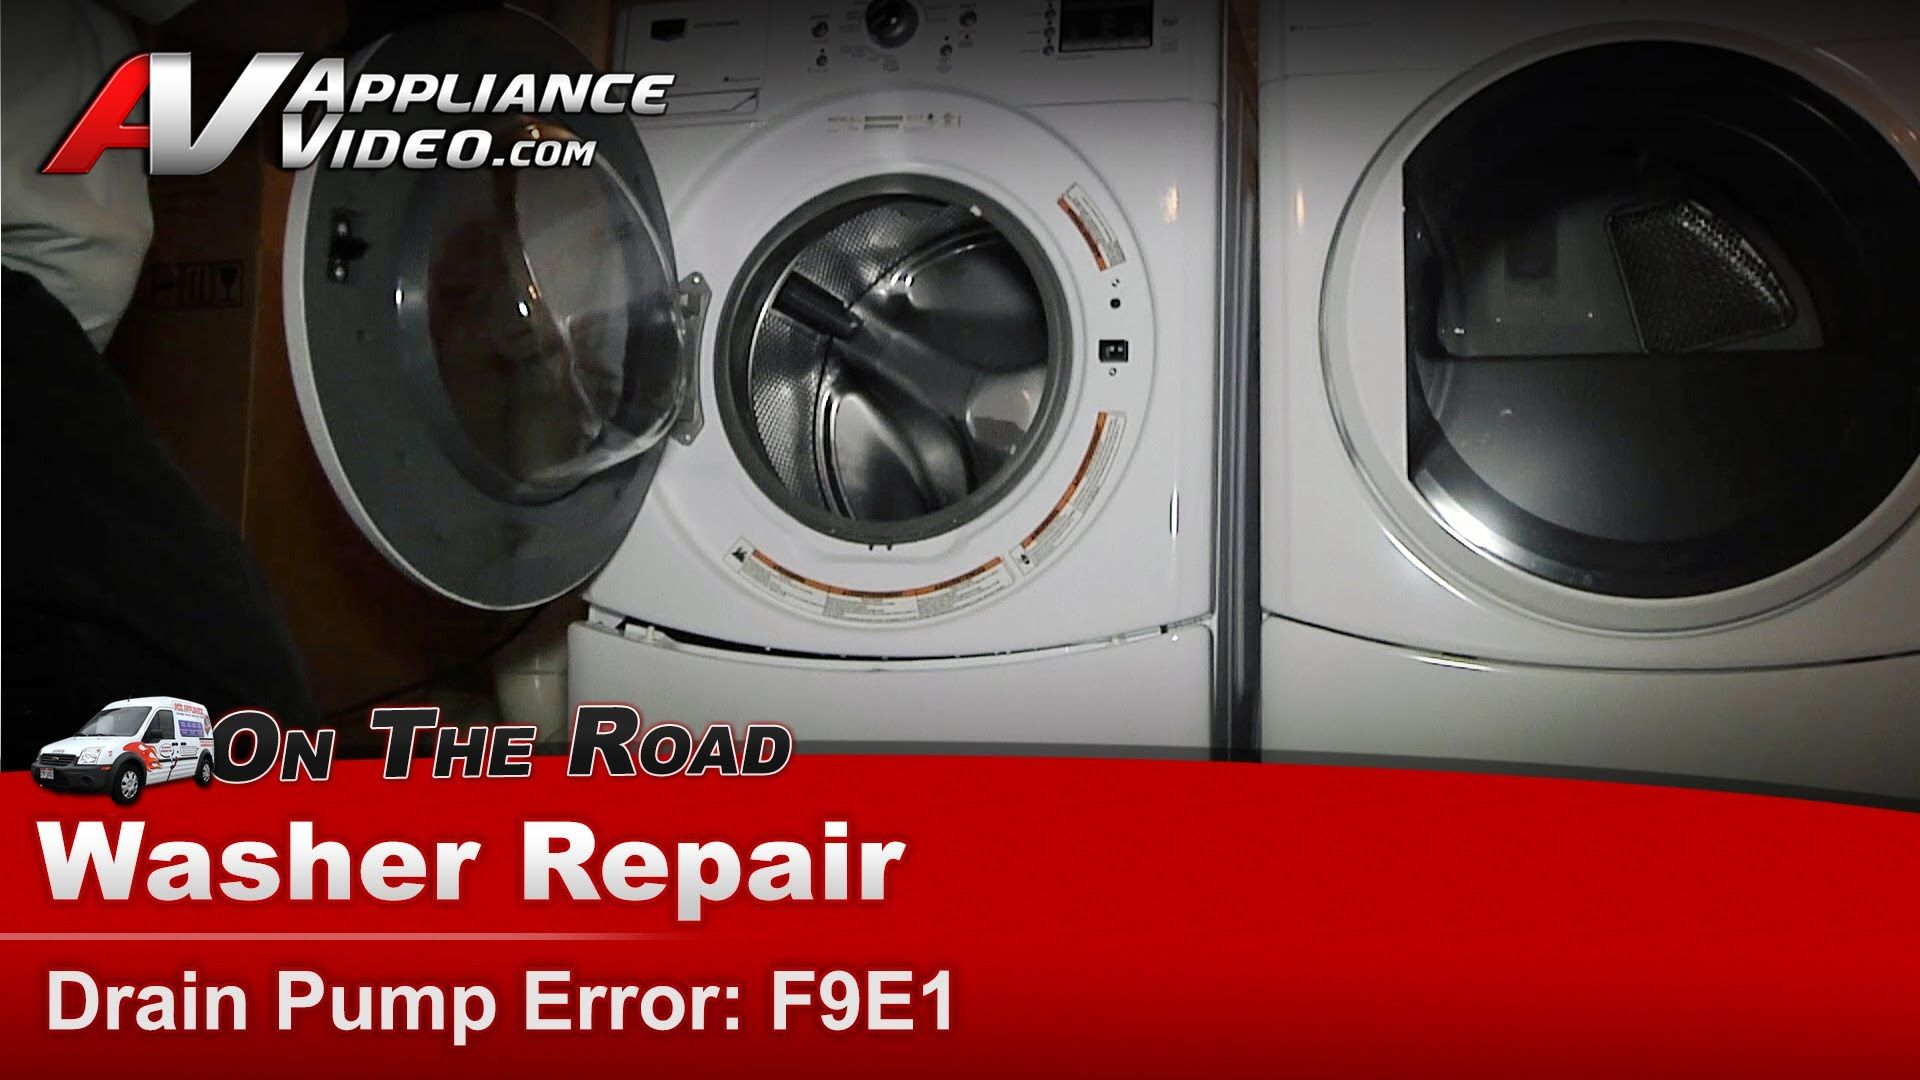 Maytag Whirlpool Washer Repair Drain Pump Error No Drain F9e1 Mhwe201yw00 Washer Repair Drain Pump Whirlpool Washer